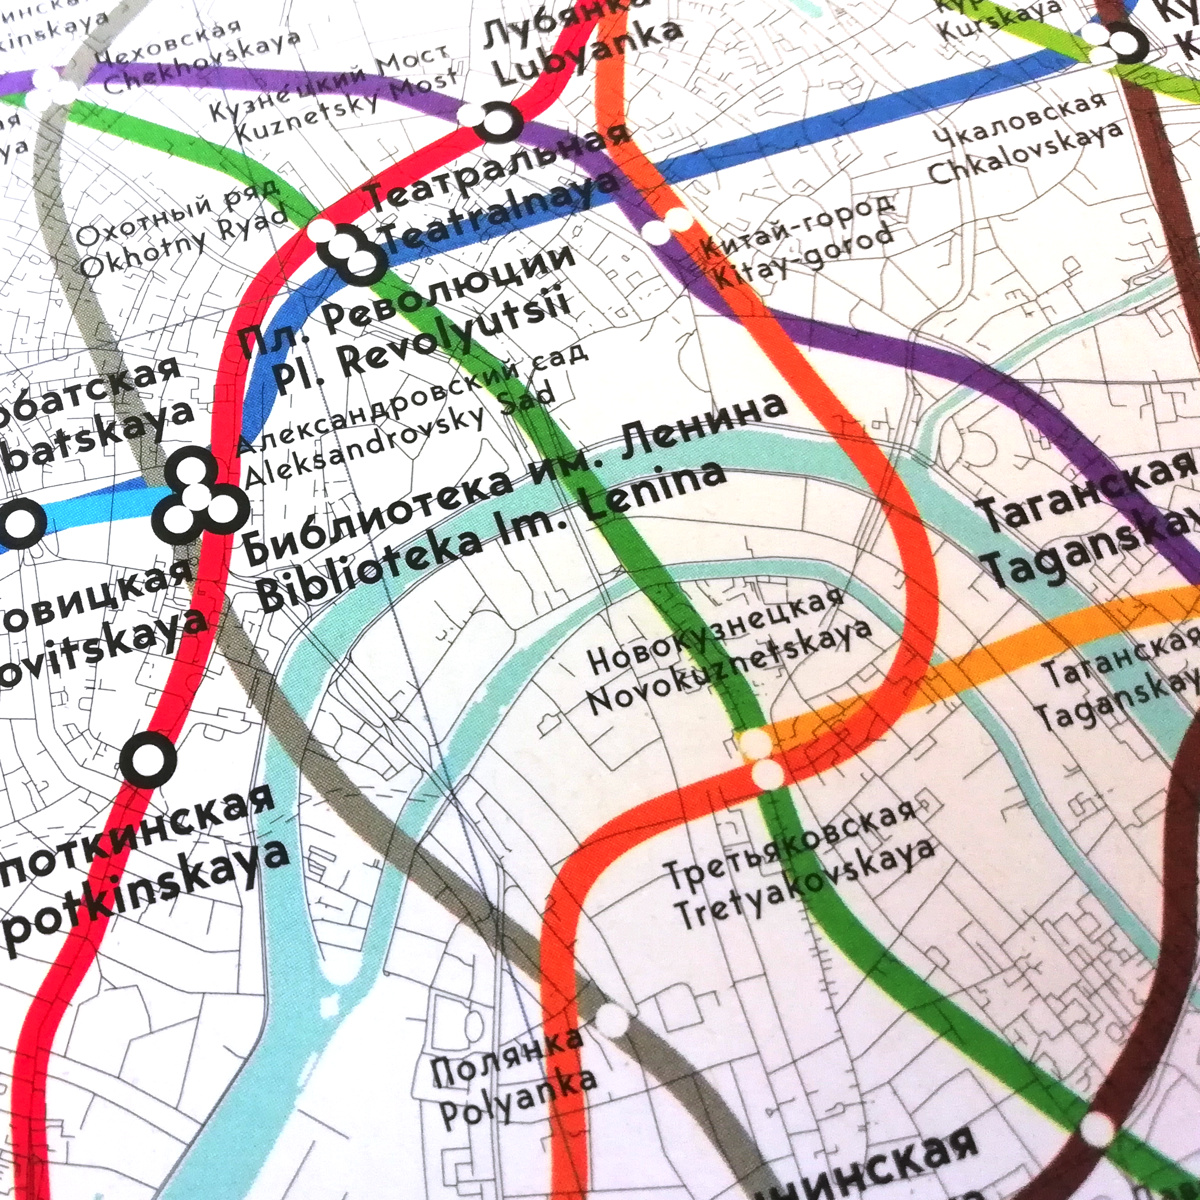 Moscow Metro Architecture & Design Map | Mapping London